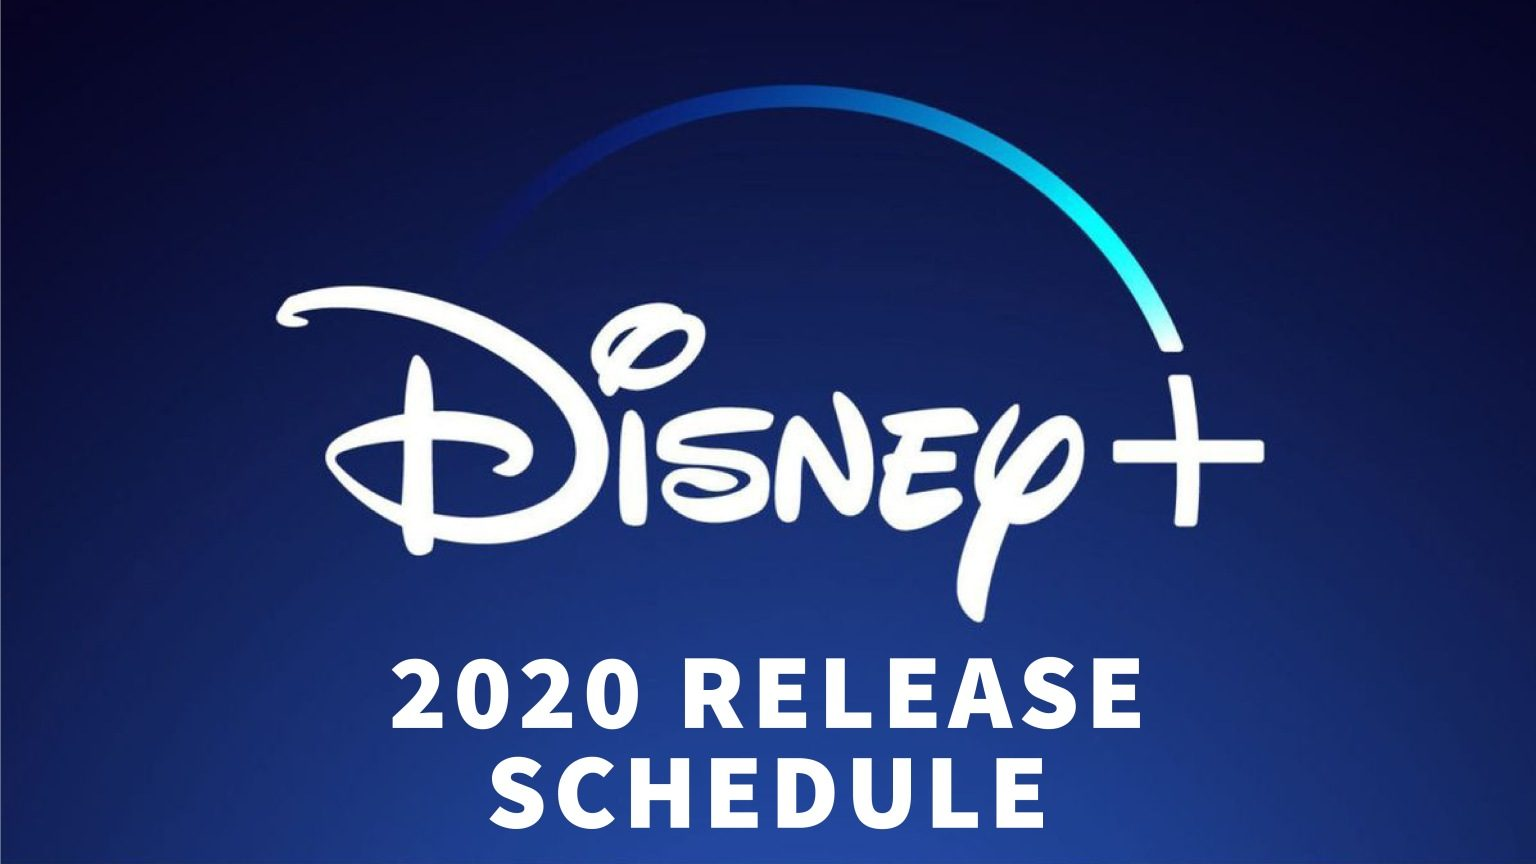 Disney Plus 2020 Release Schedule M